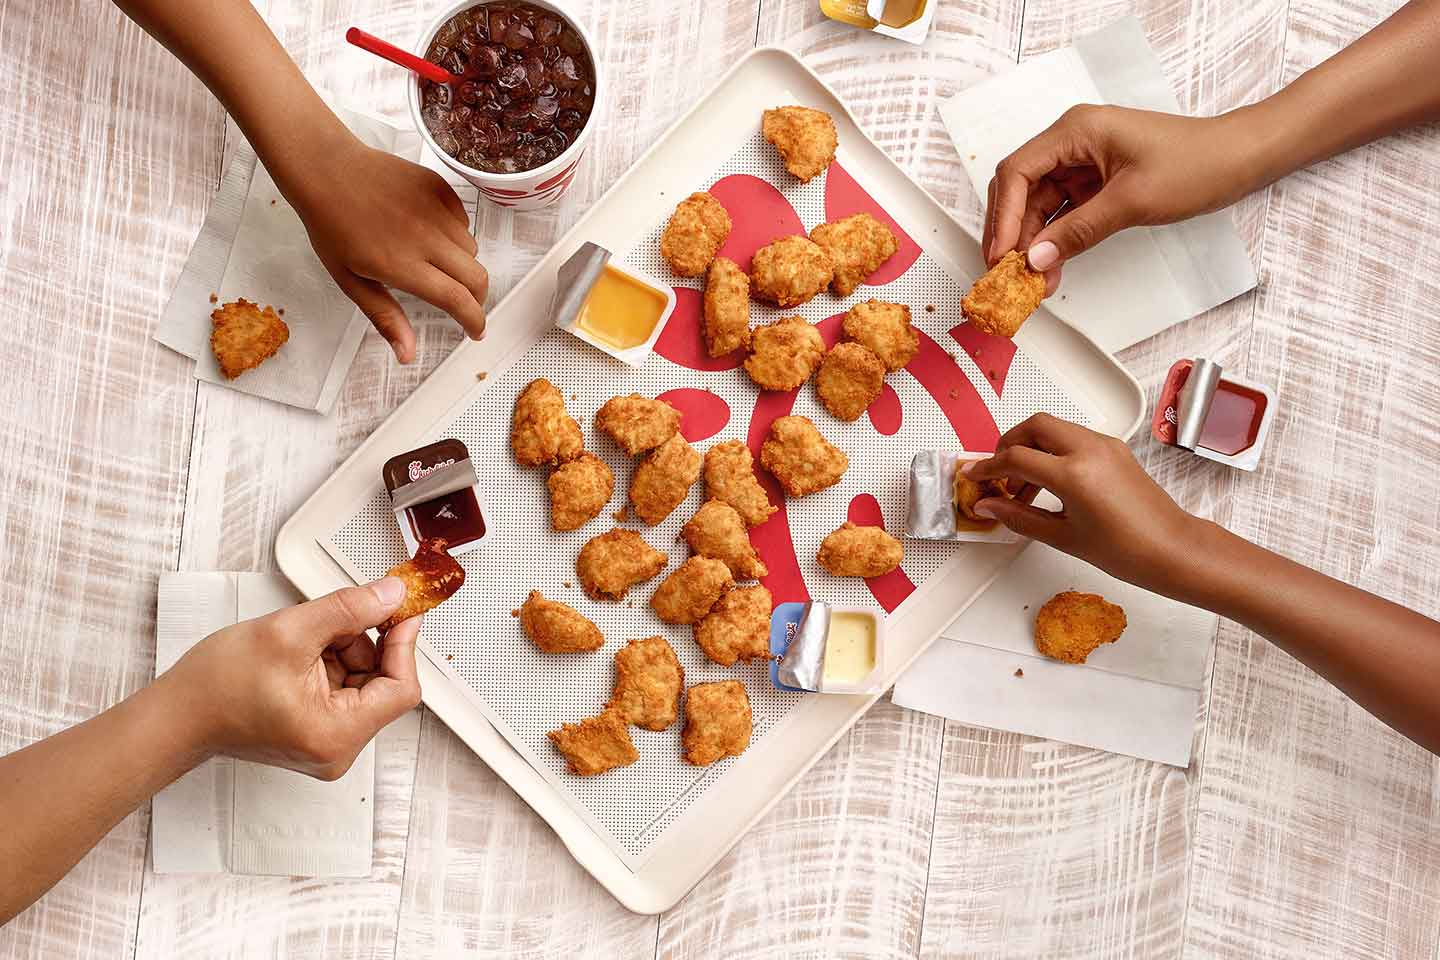 Background image for Chick-Fil-A One, the loyalty program of Chick-Fil-A.